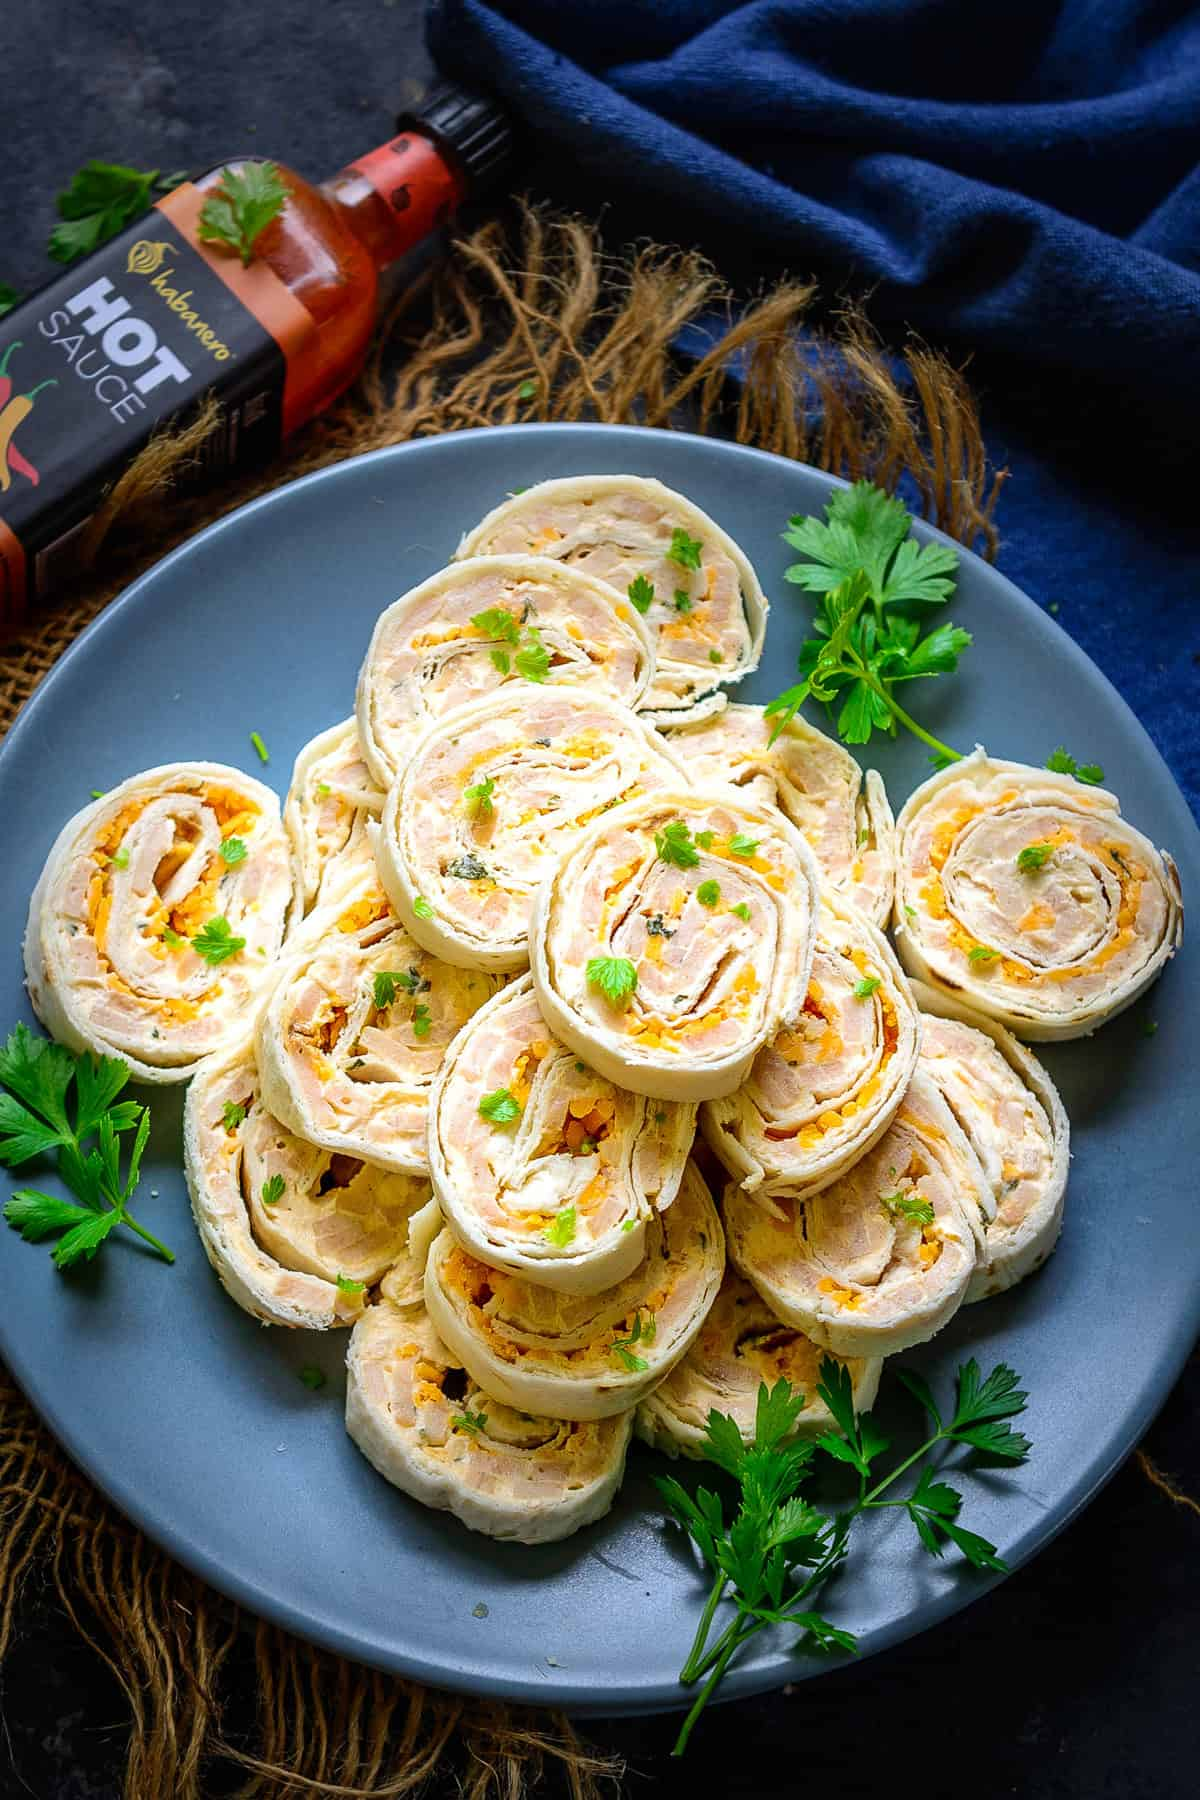 Ham and Cheese Pinwheels served on a plate.